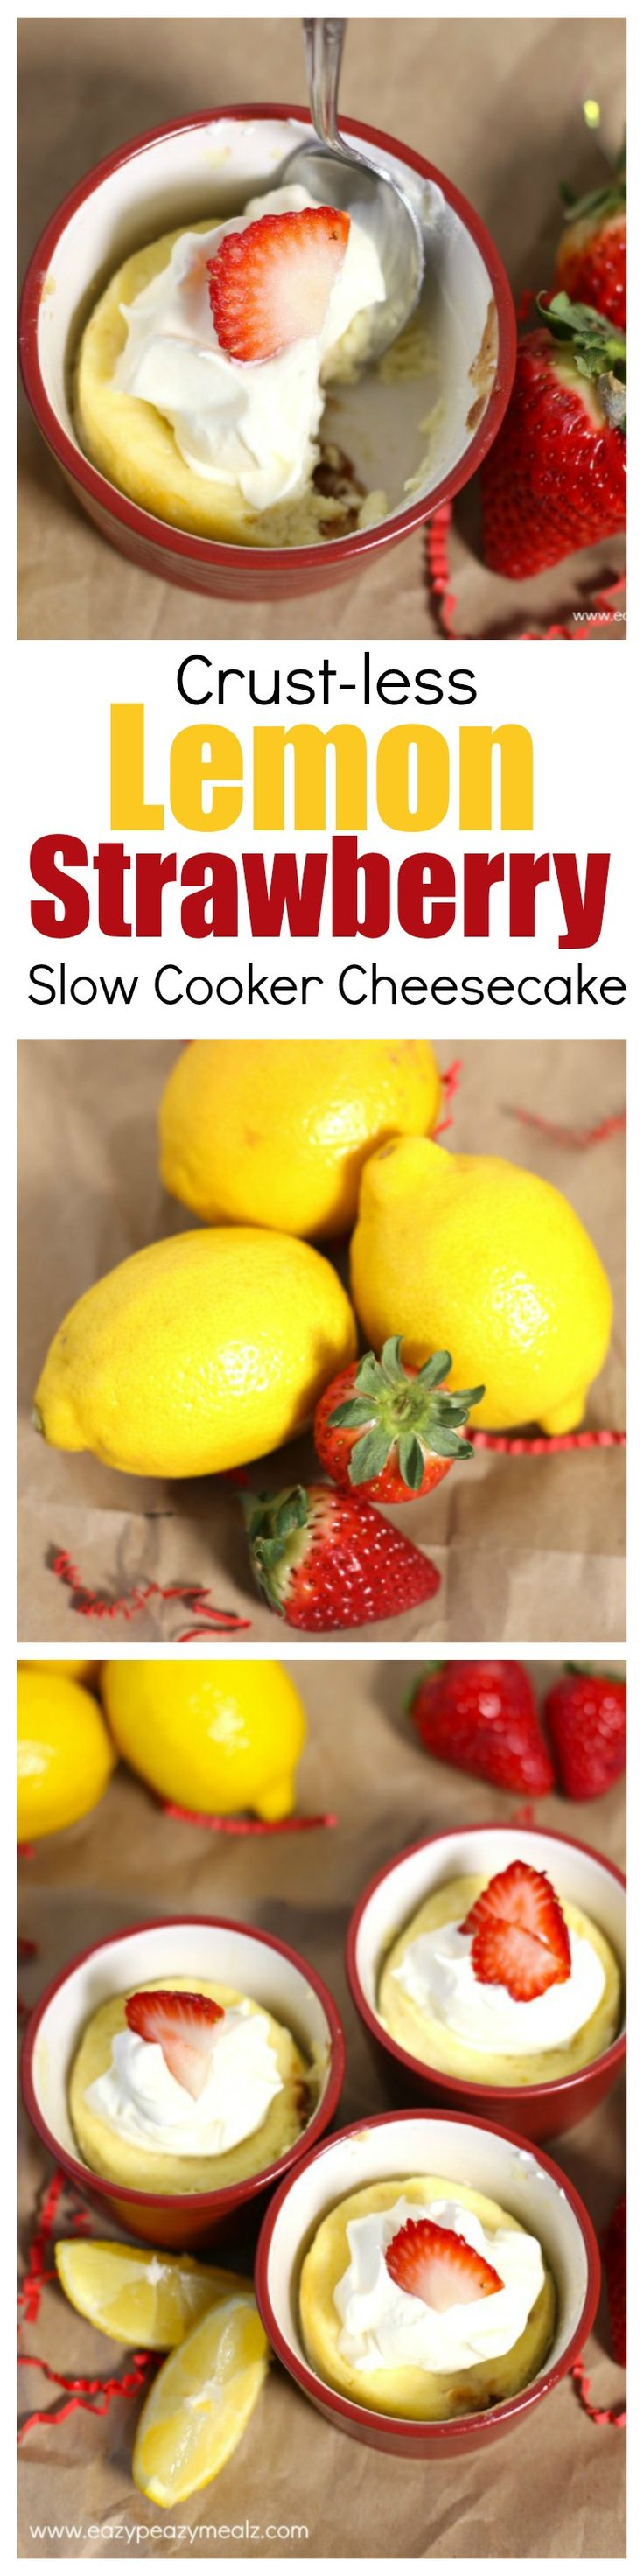 A lemon strawberry cheesecake that is crust-less, and made in your SLOW COOKER! So easy and really tasty! Try it. - Eazy Peazy Mealz